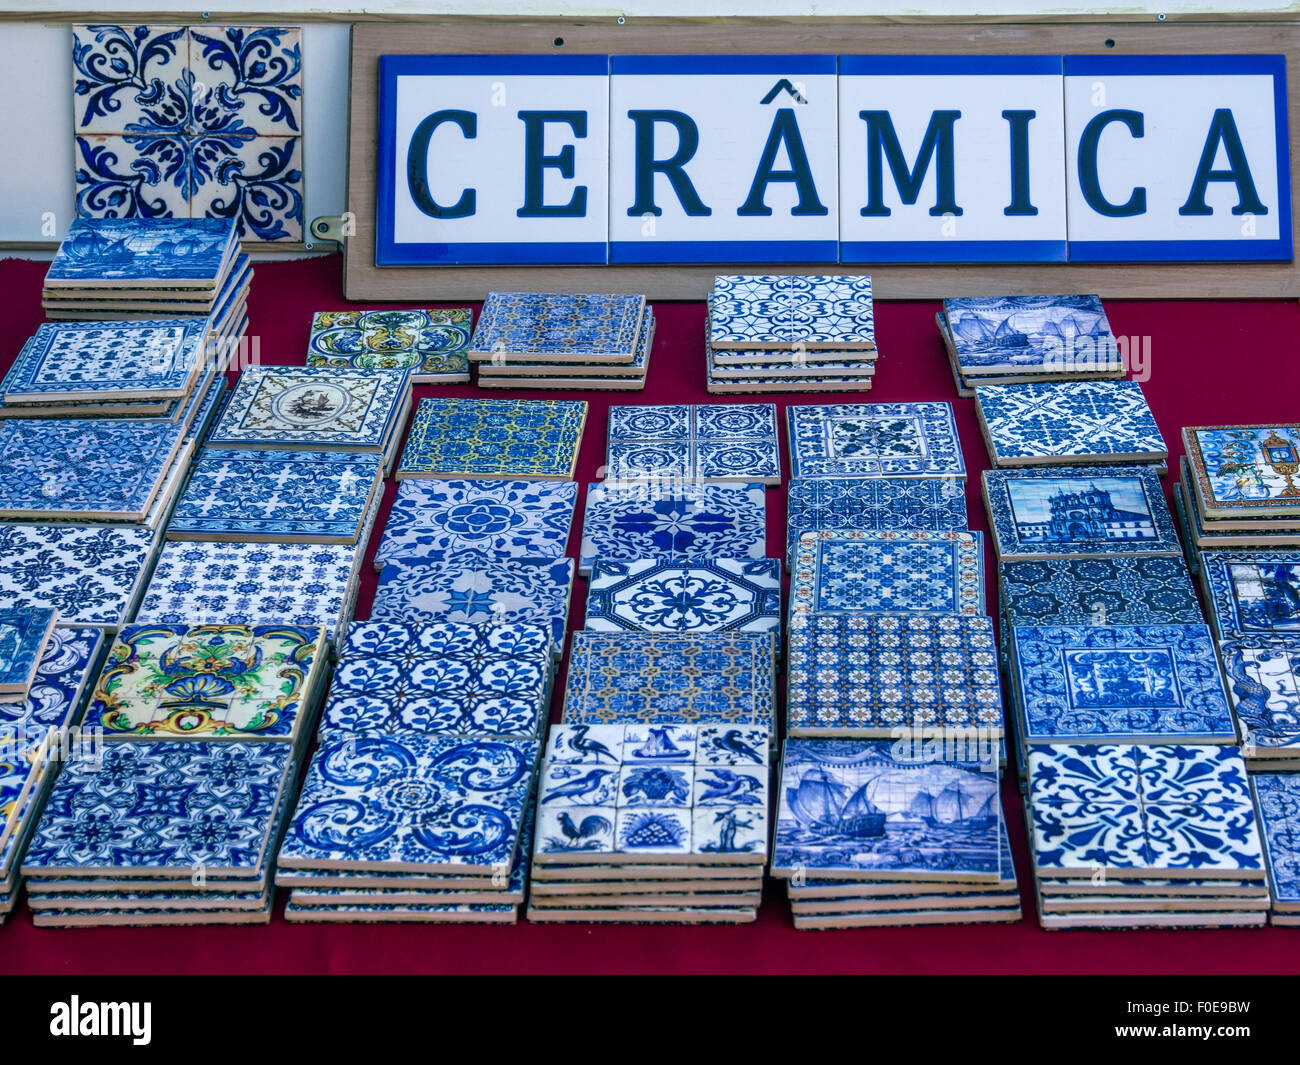 Blue Ceramic Tiles Stock Photos & Blue Ceramic Tiles Stock Images ...